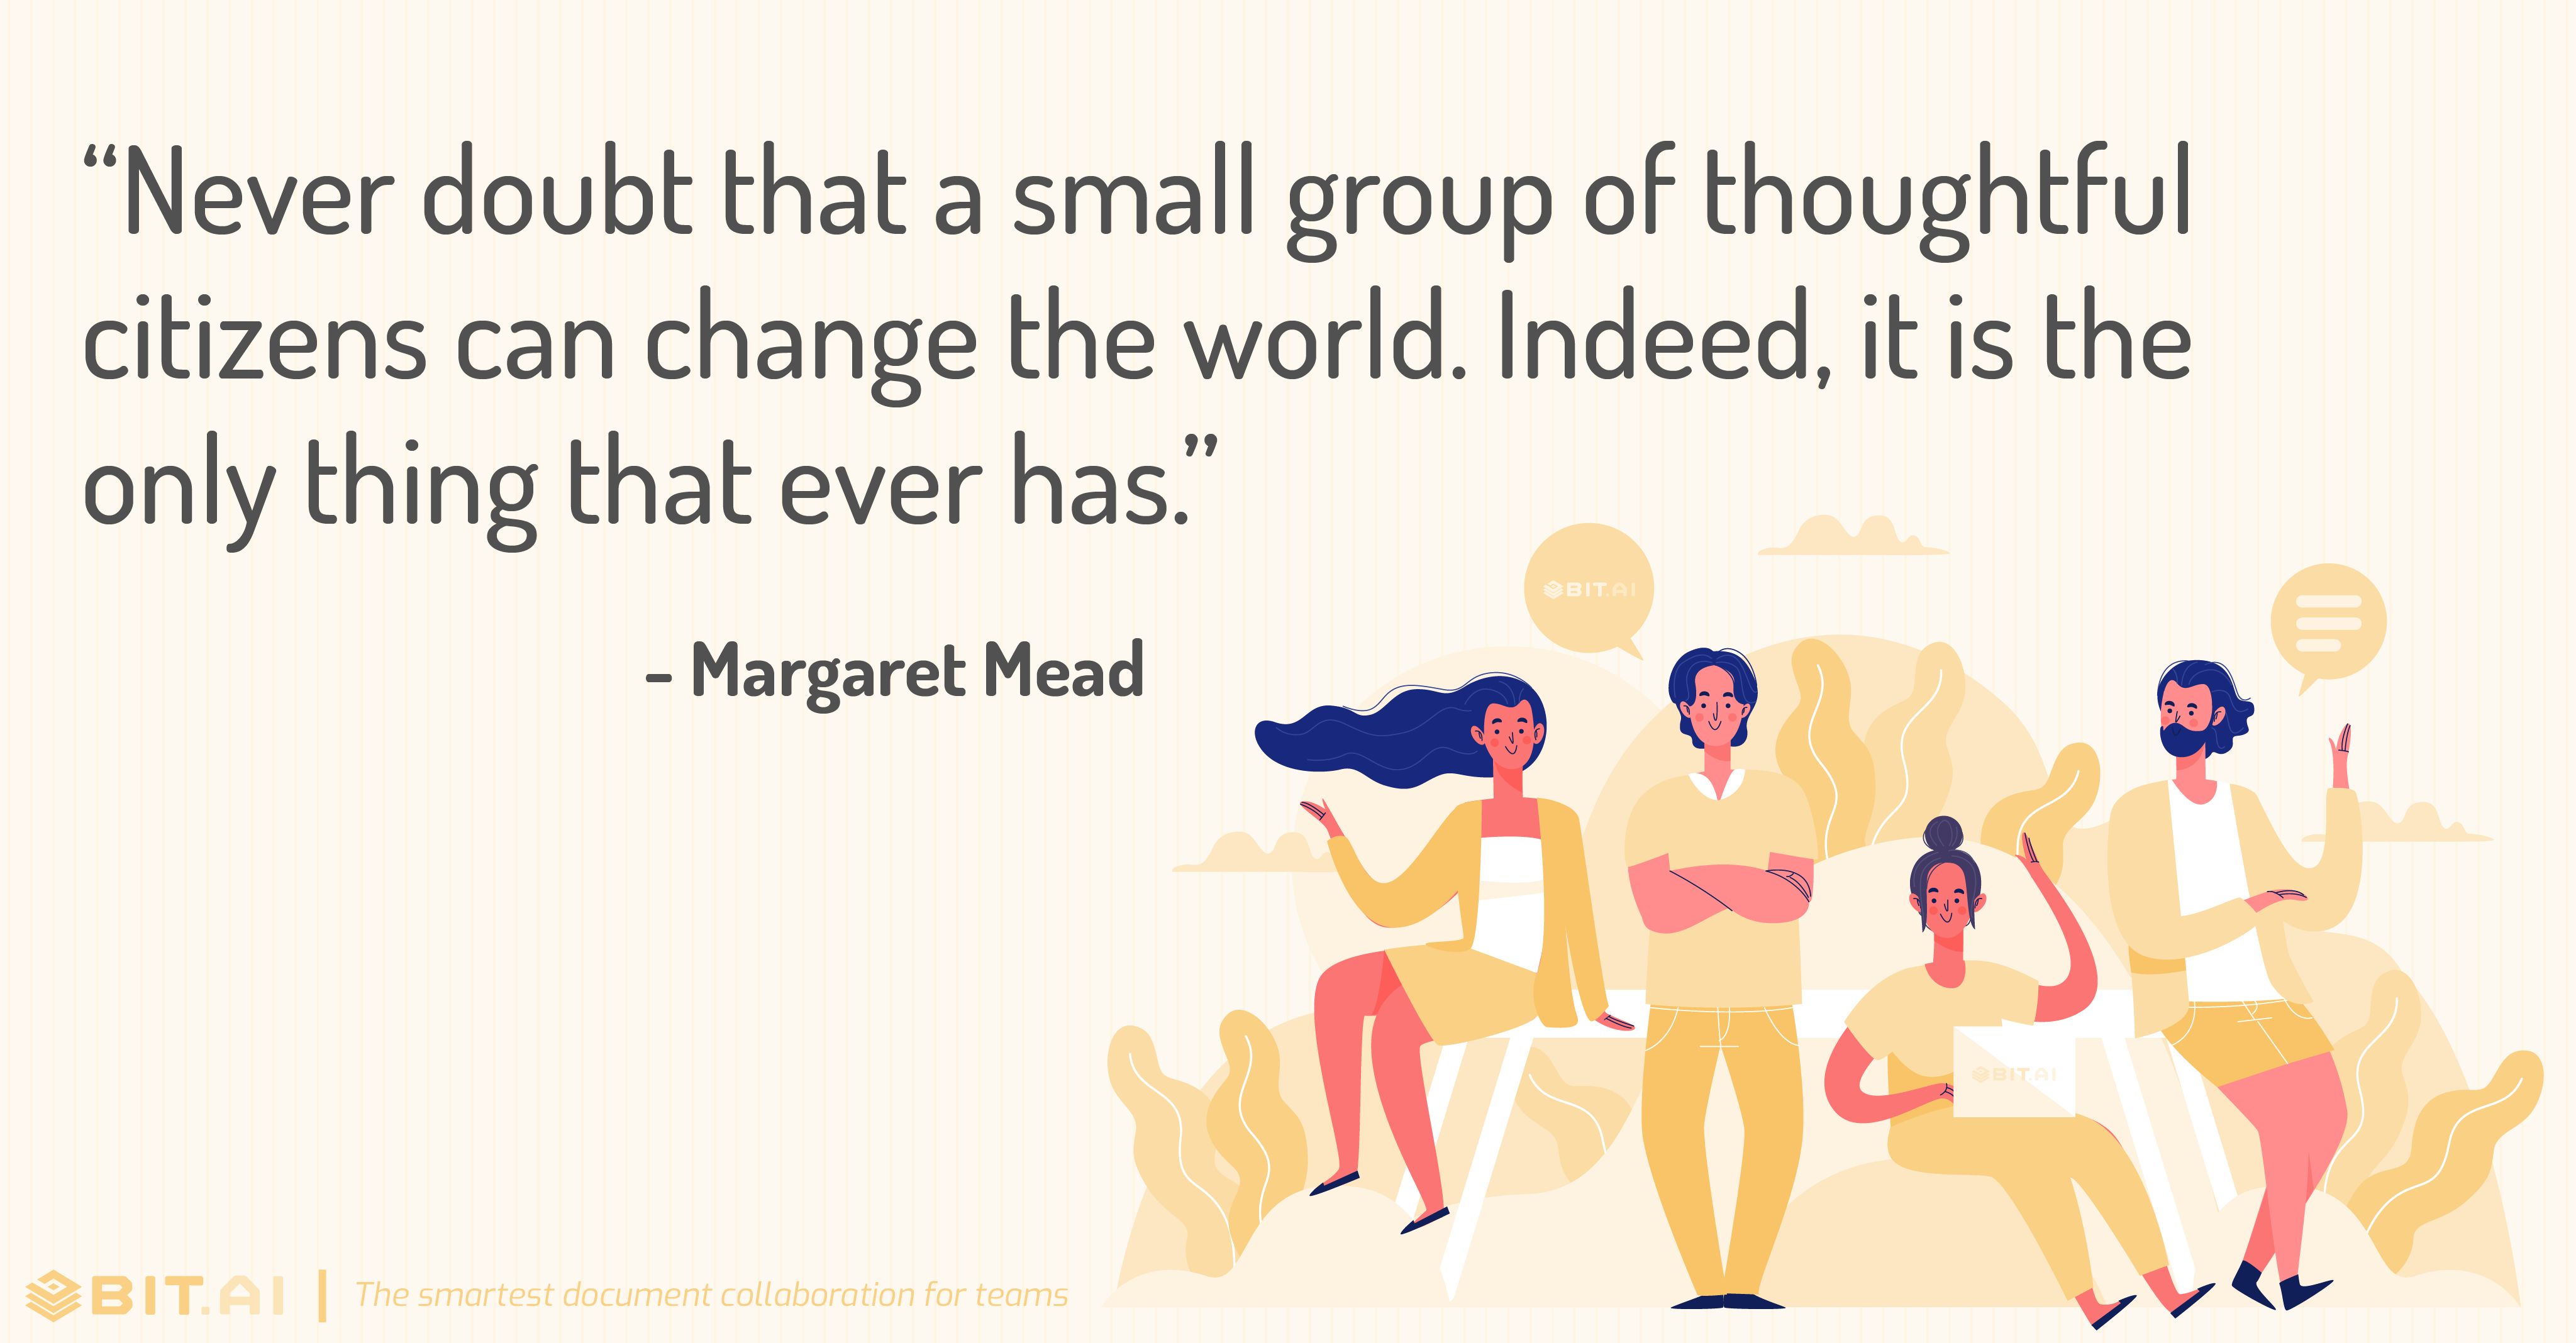 """Never doubt that a small group of thoughtful citizens can change the world. Indeed, it is the only thing that ever has."" - Margaret Mead"